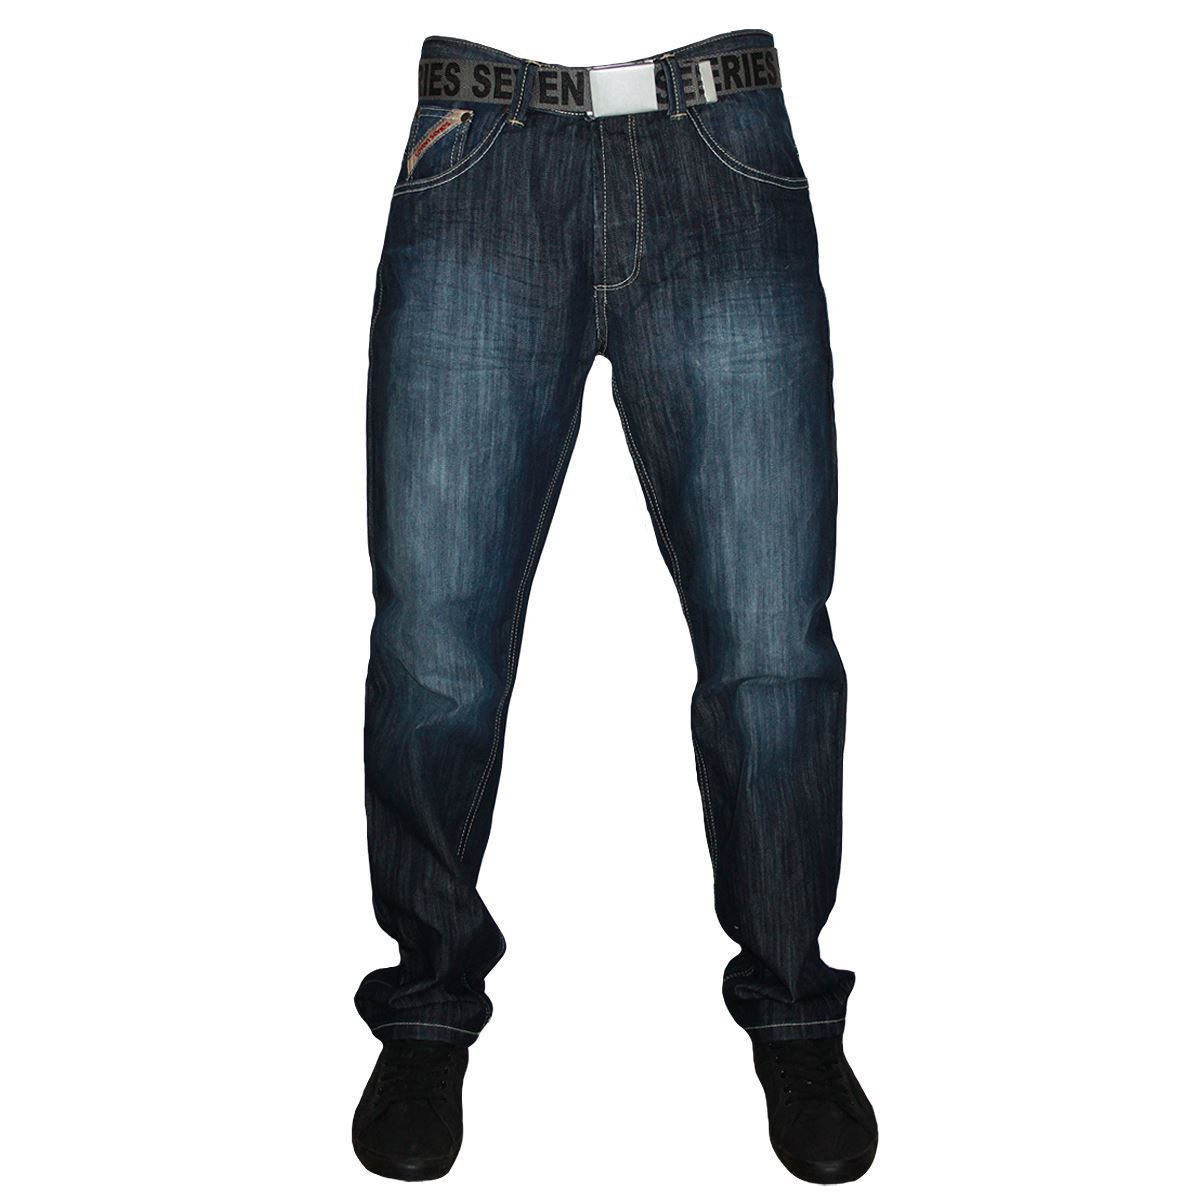 ASOS standard sized women''s jeans, pants and leggings which do not have a leg length are designed to fit an inside leg length of 32 inches / 81cm however, actual length will vary depending on the style.